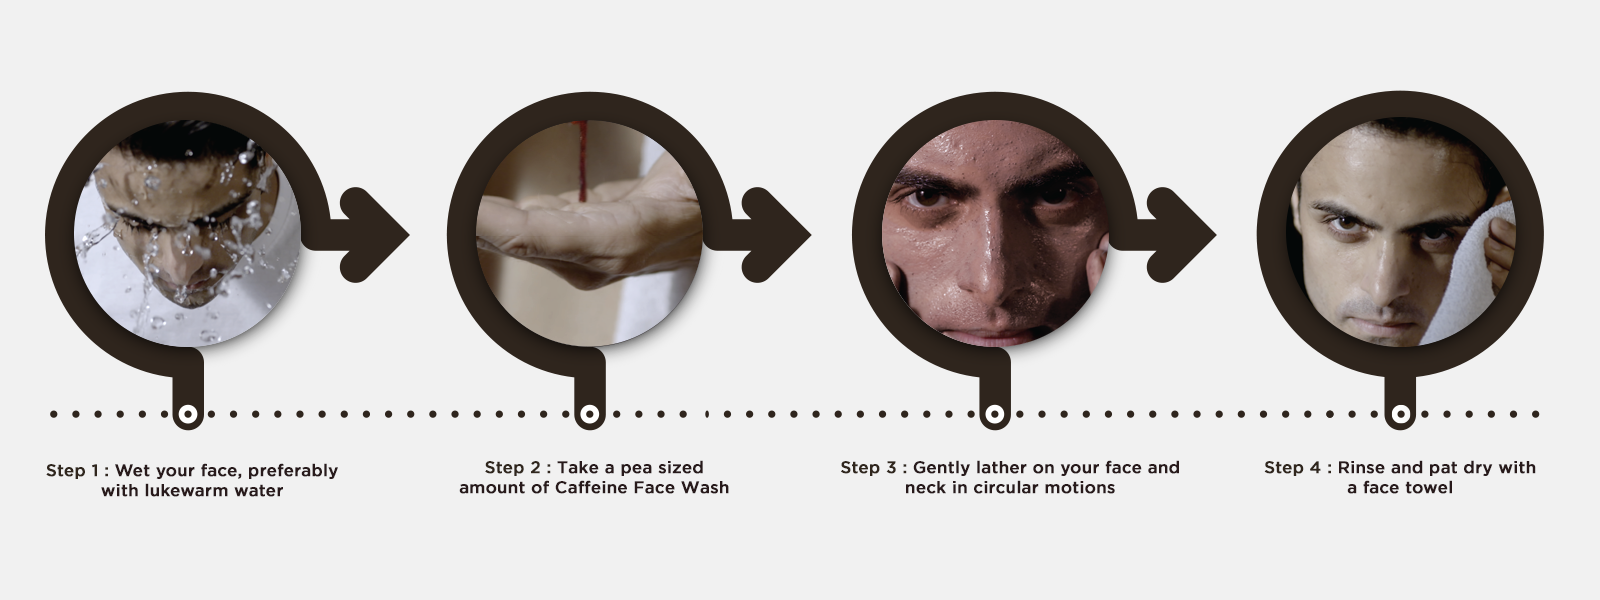 How to use coffee face wash